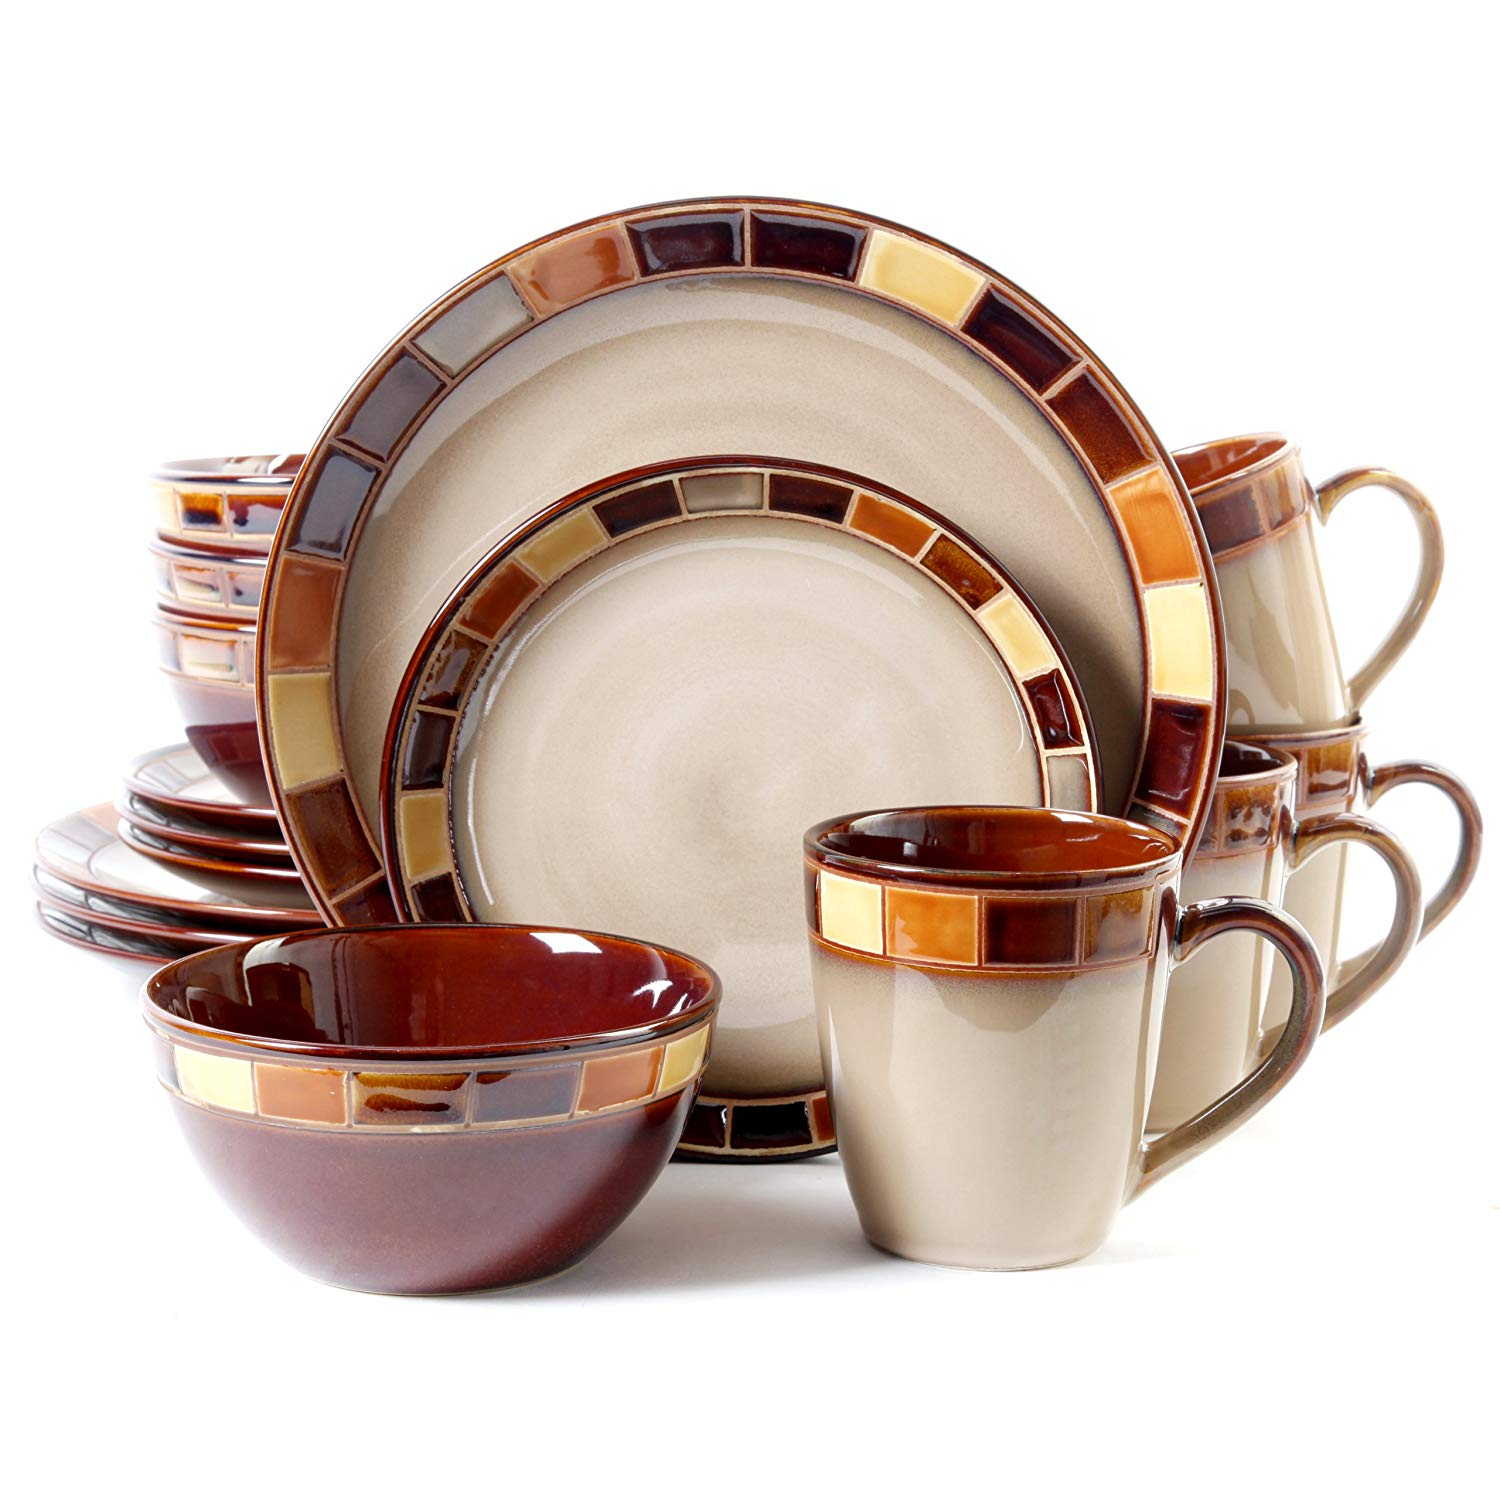 Top 10 Best Dinnerware Sets Review